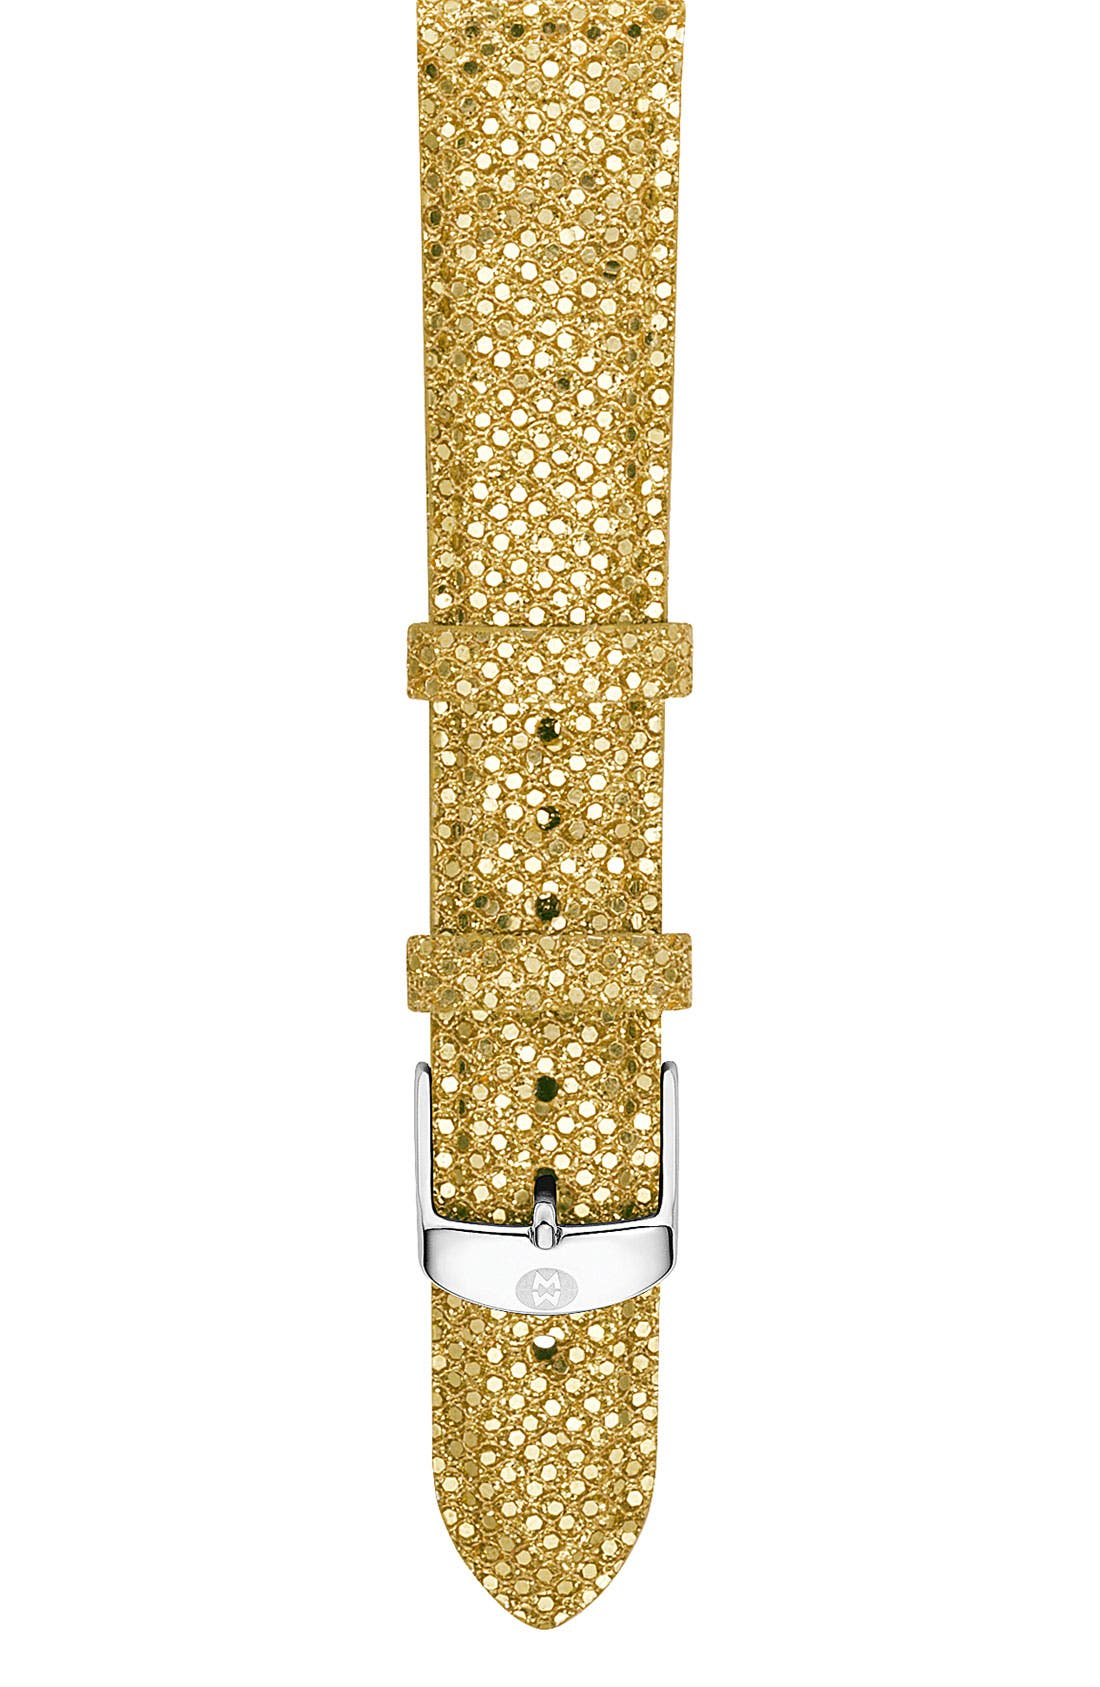 Main Image - MICHELE 18mm Sequin Watch Strap